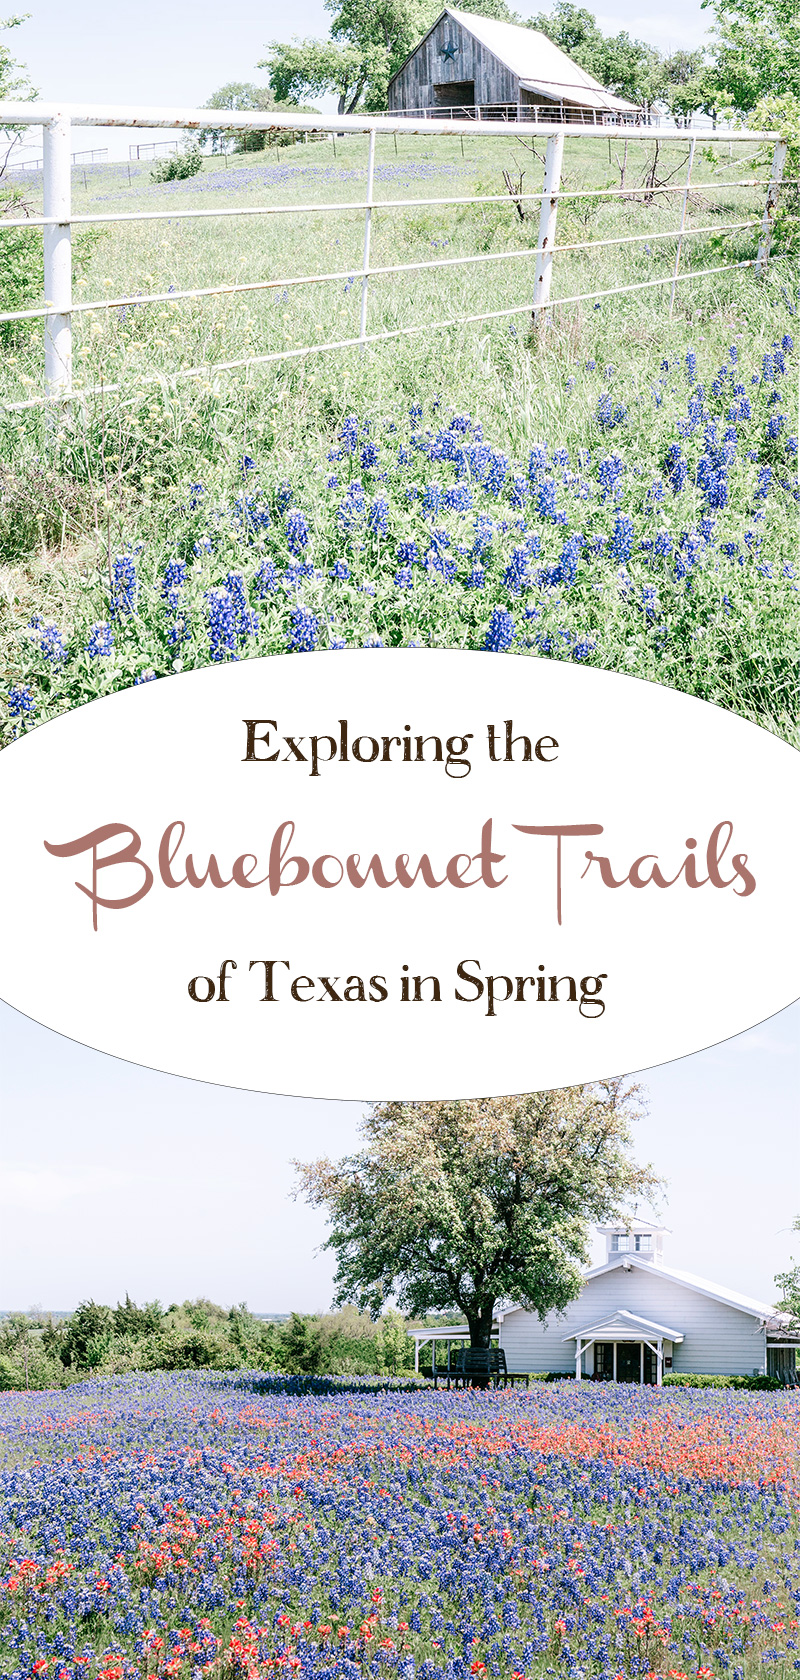 Exploring-the-Bluebonnet-Trails-of-Texas-in-Spring